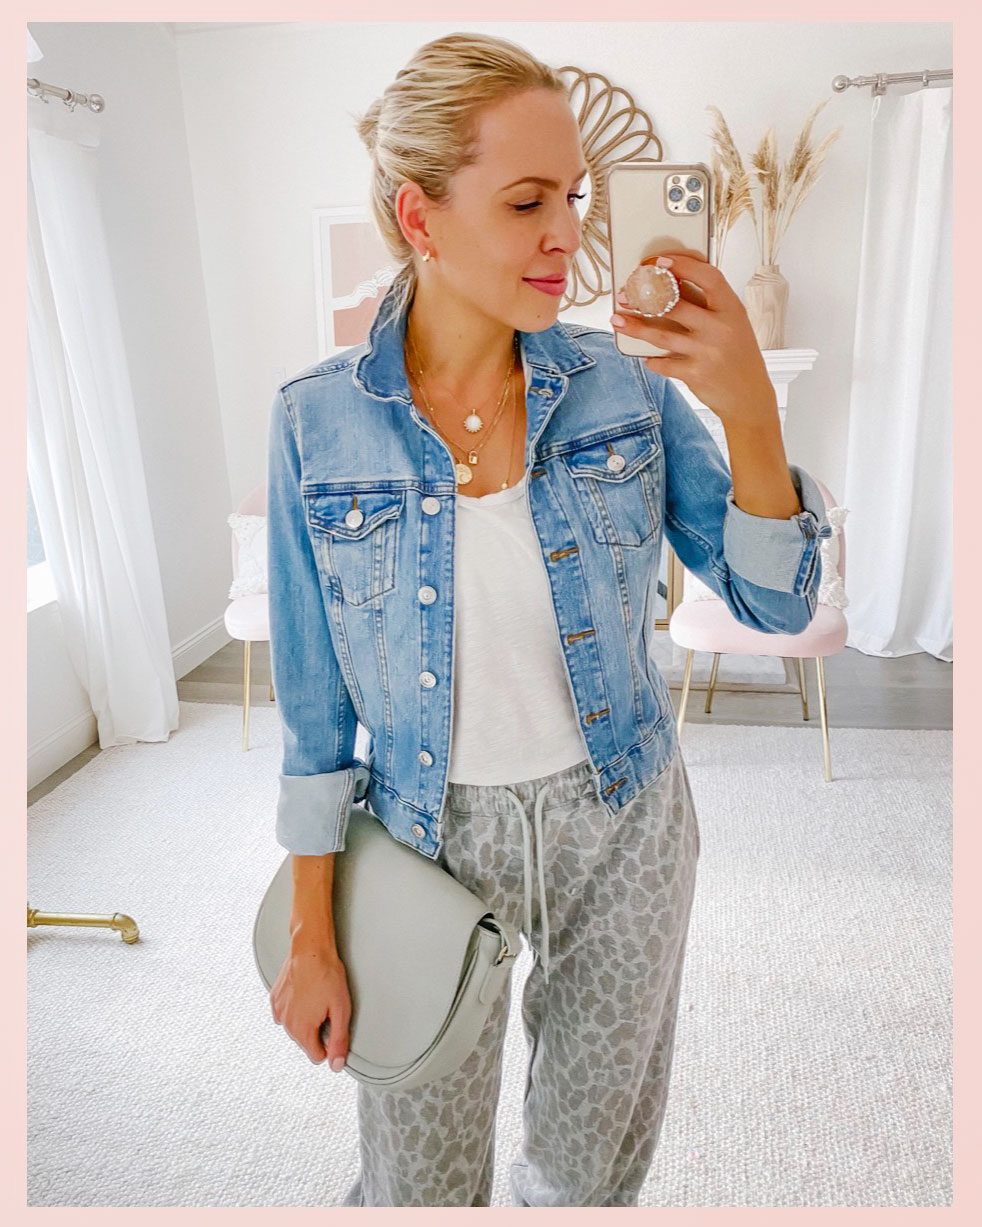 Denim jacket for women styled 5 casual chic ways for fall, featured by San Francisco style blogger Lombard and Fifth.